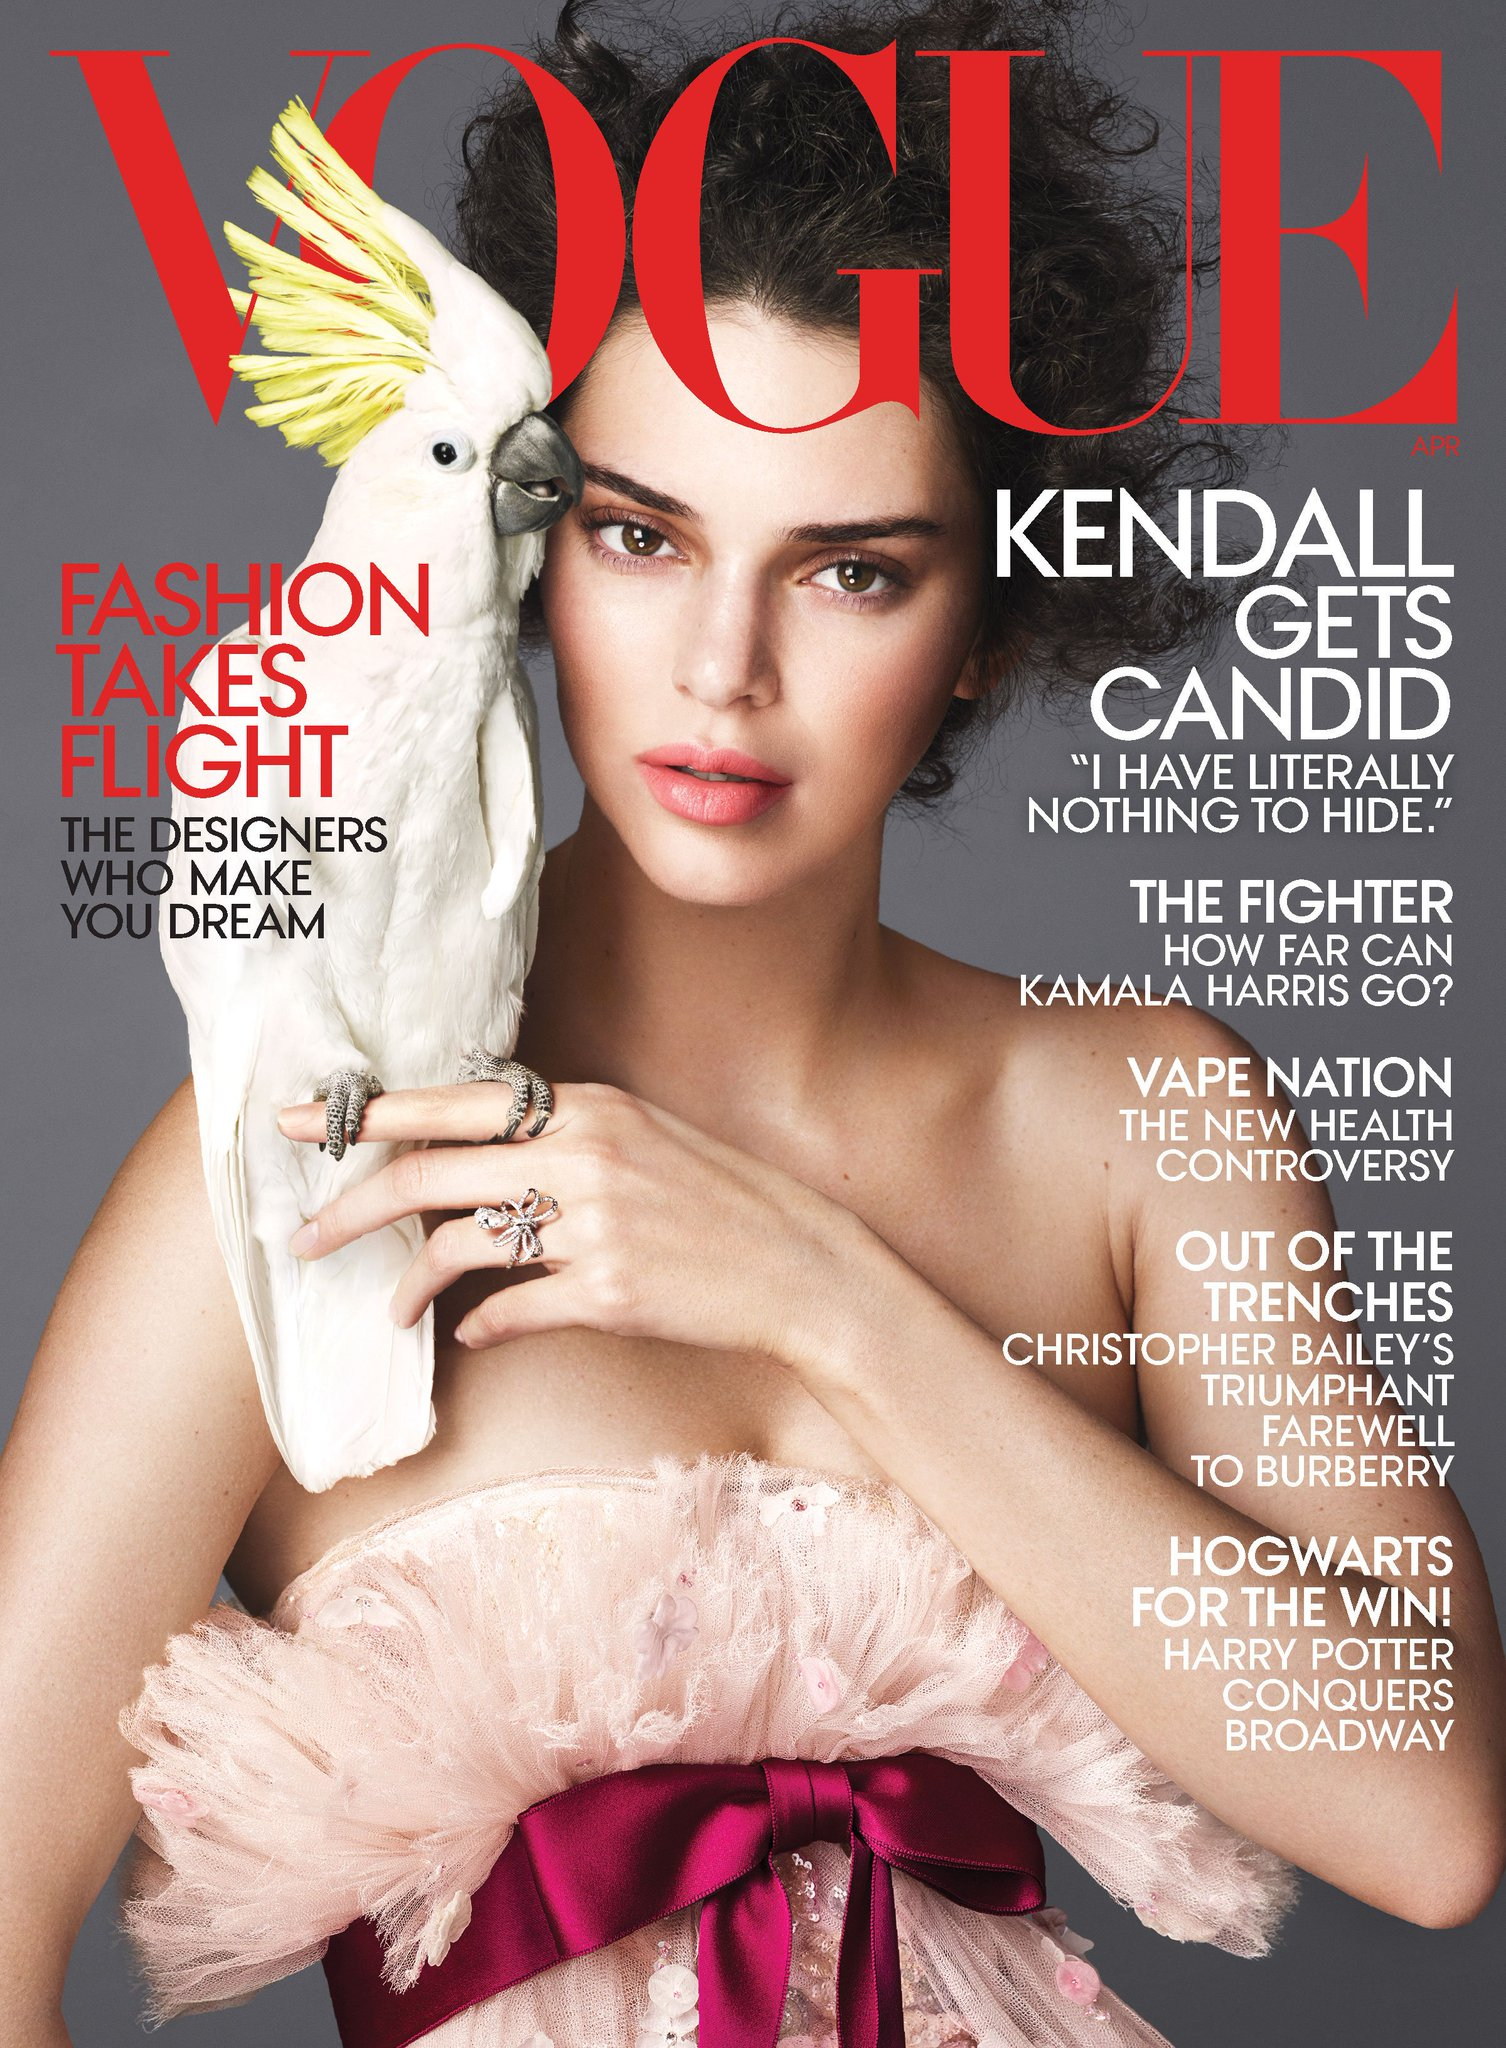 .@KendallJenner stars on the cover of our April issue! Read the full interview: https://t.co/Kdy436tg8z https://t.co/vcPm0aLY7f